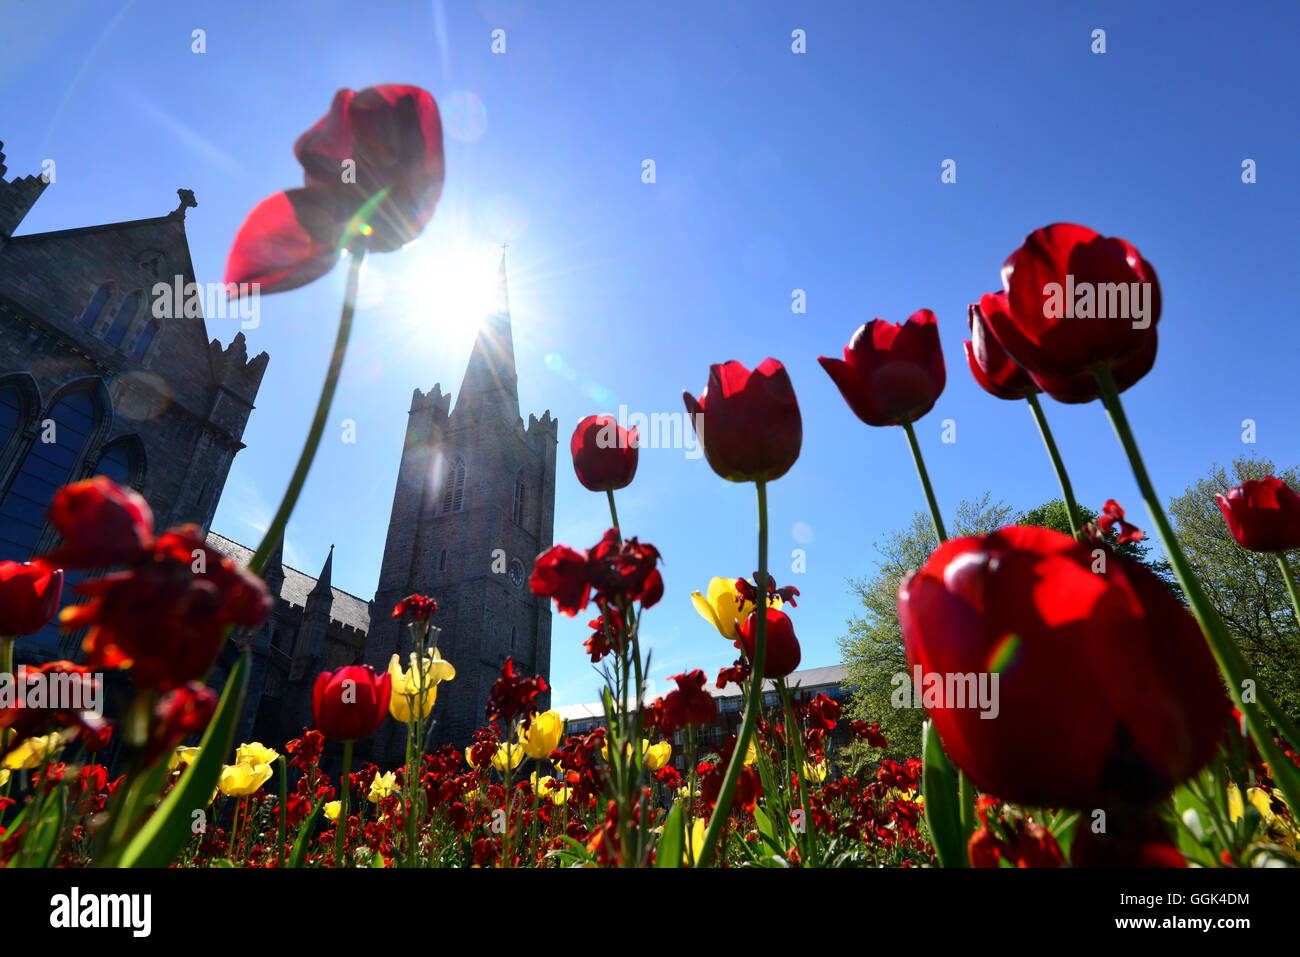 Tulips infront of St. Patrick's Cathedral, Dublin, Ireland - Stock Image